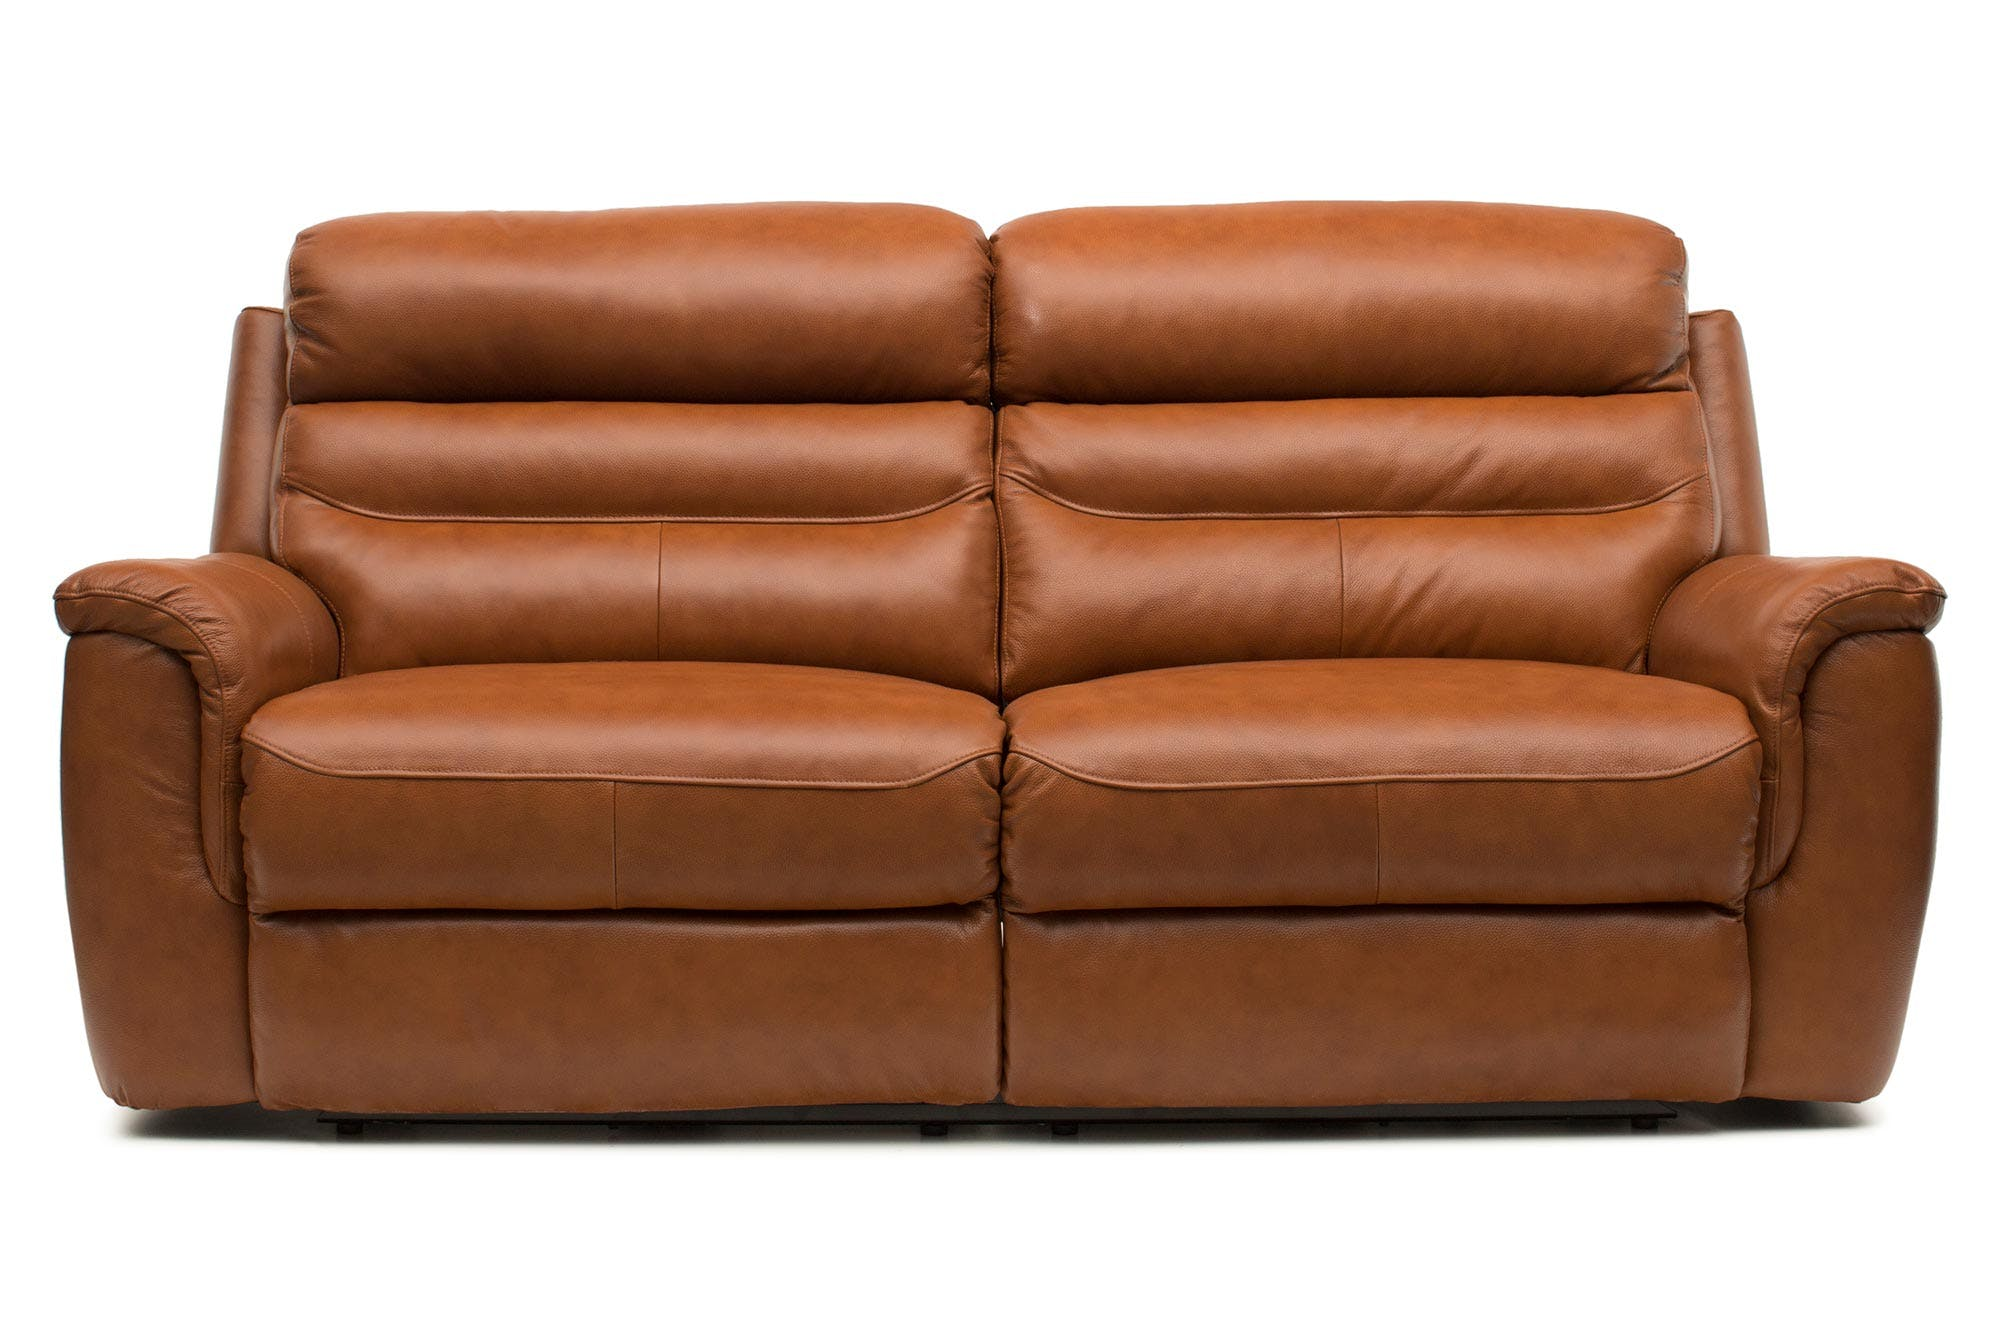 Bayle 3 Seater Leather Recliner Sofa Ireland